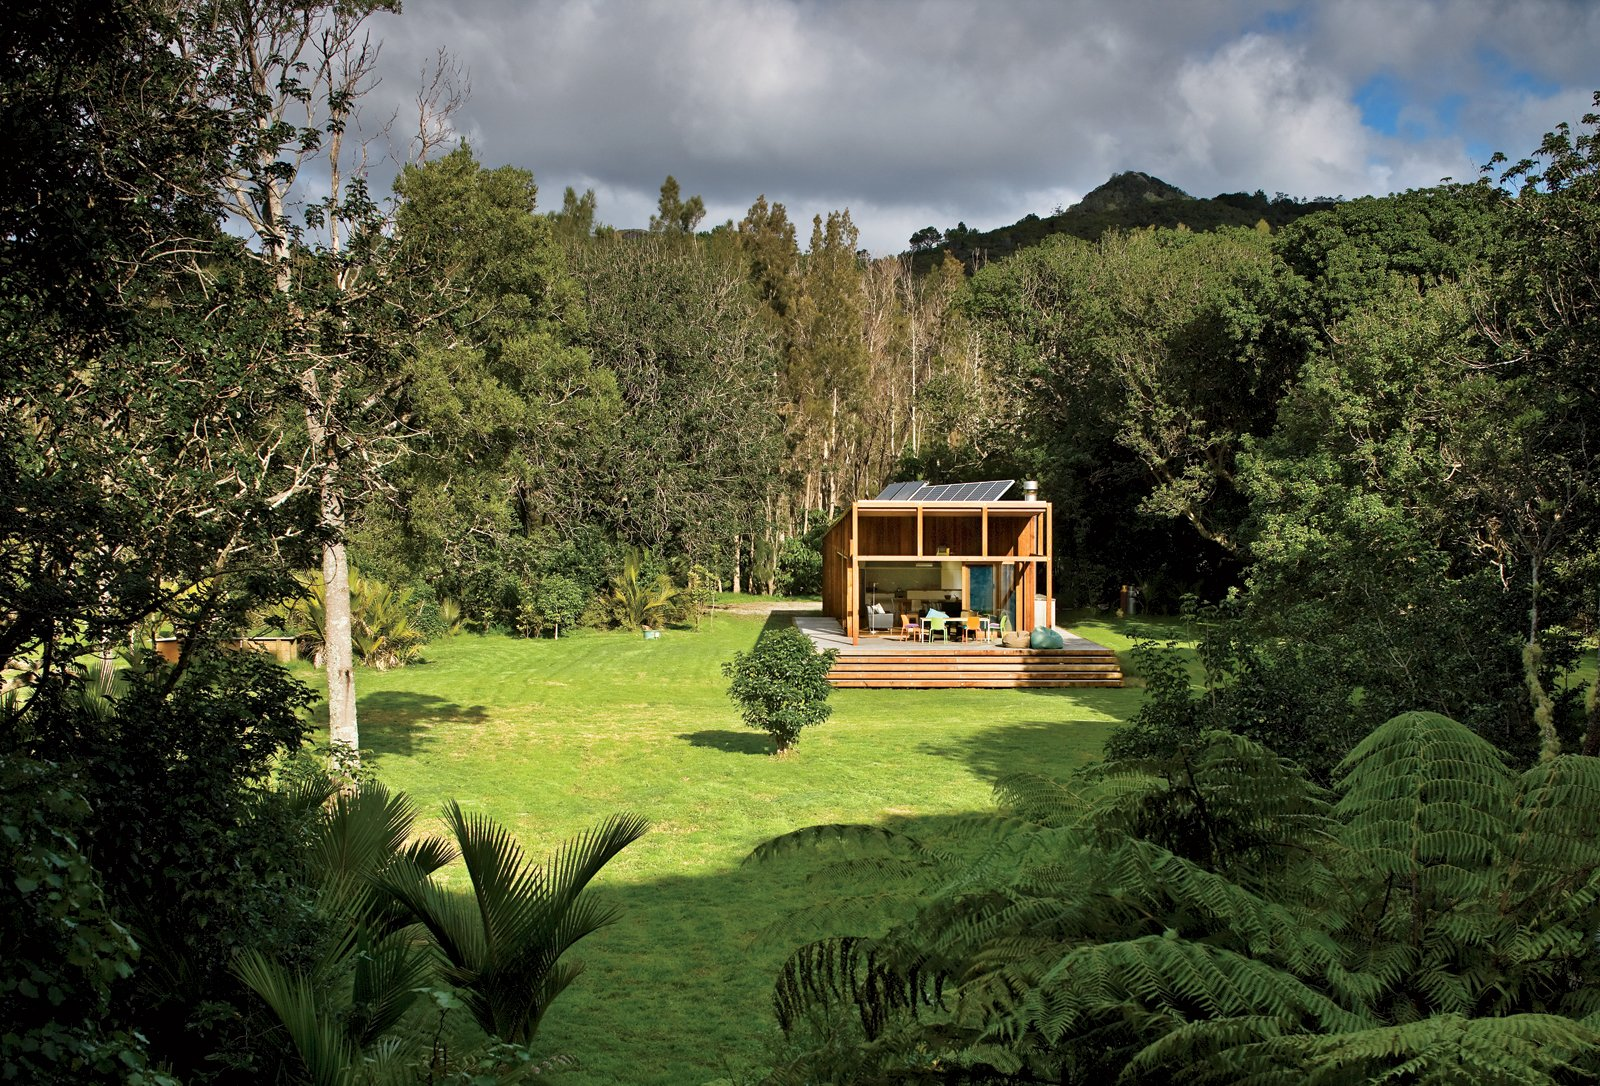 Bach to Nature  Two doctors wanted their typical New Zealand home to function as simply as it looks.